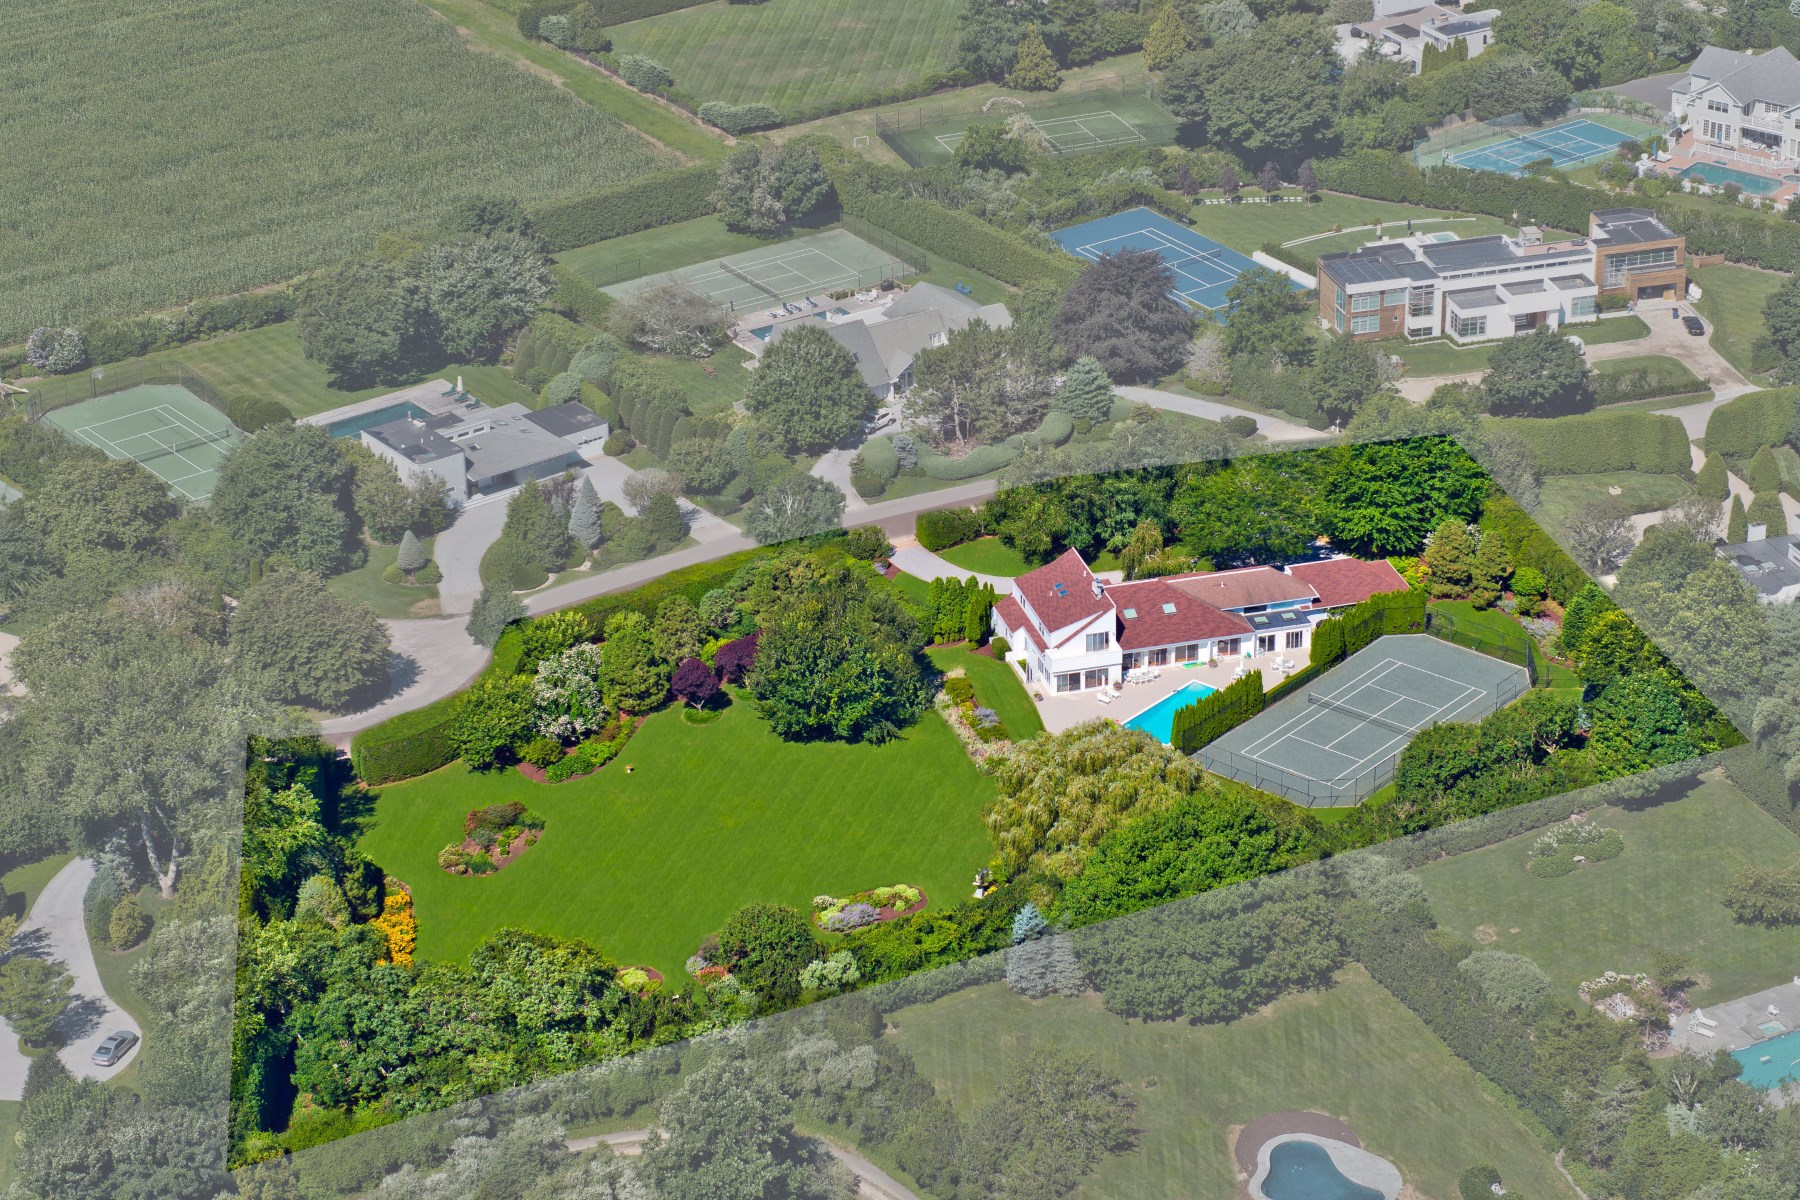 Single Family Home for Sale at Exceptional & Tranquil 2+ Acre Compound 24 And 32 Potato Barn Road Water Mill South, Water Mill, New York, 11976 United States